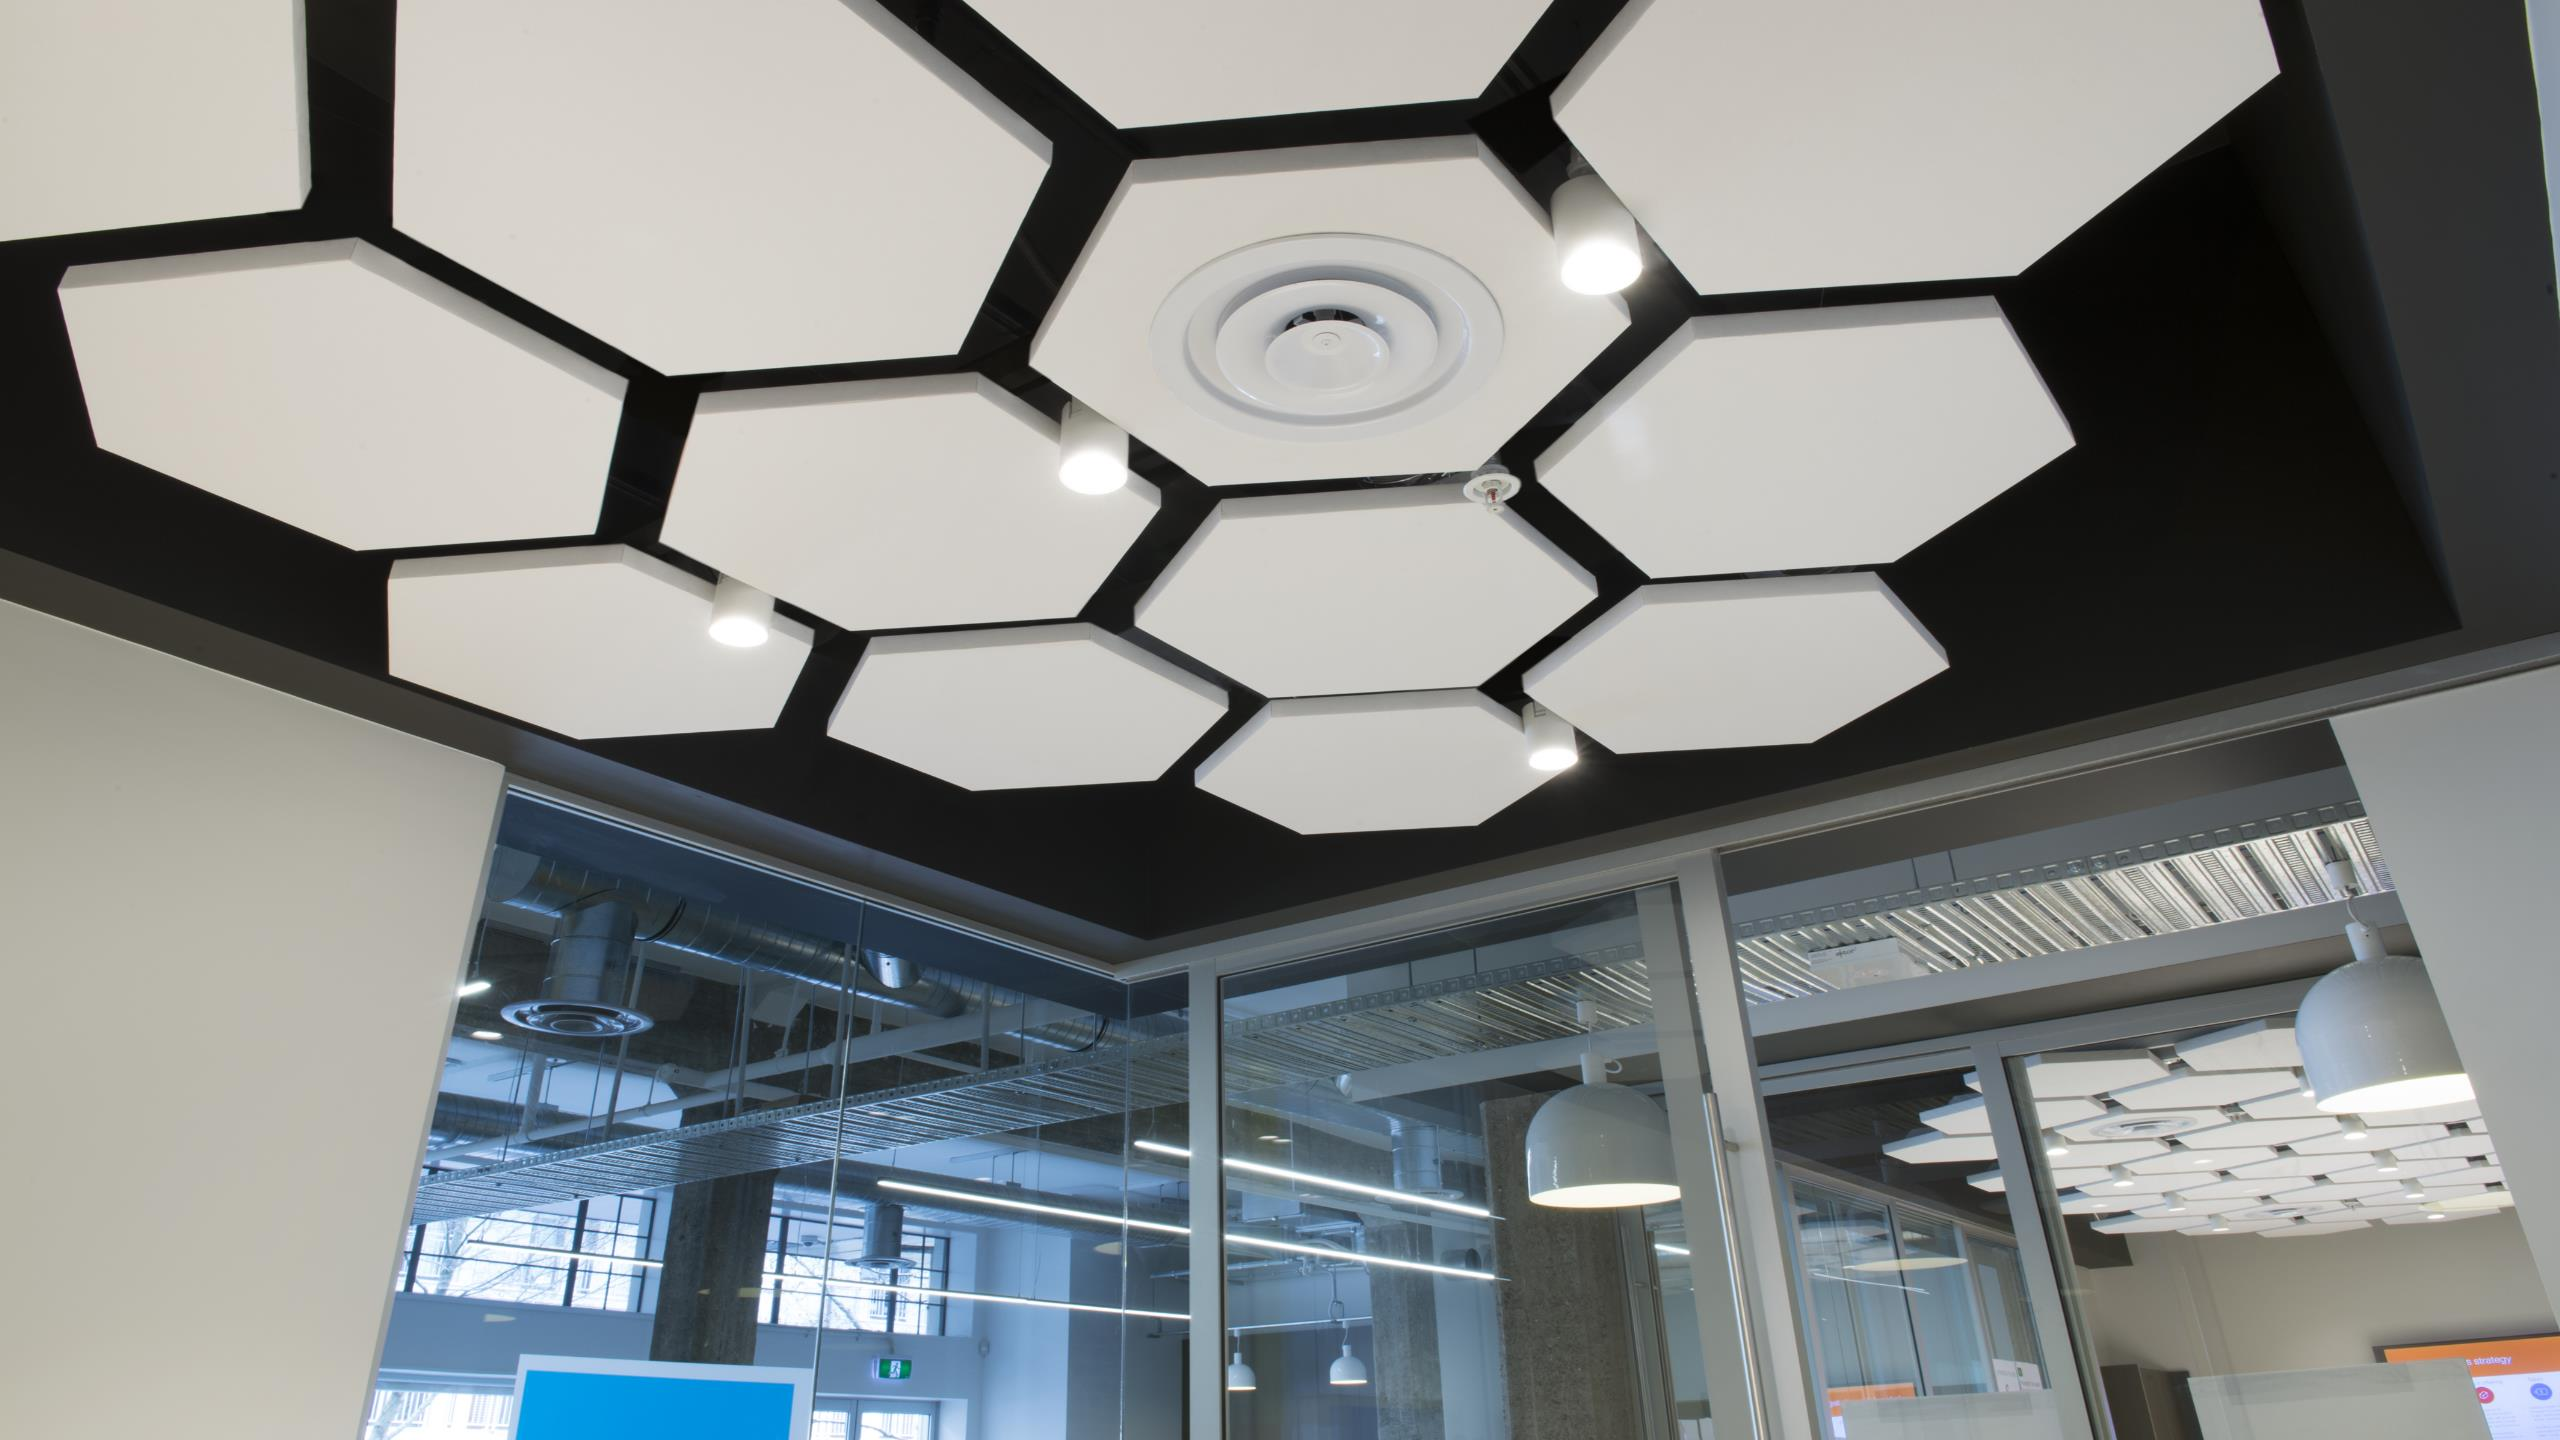 Jade Offices - Triton Sound Shapes, Hexagons